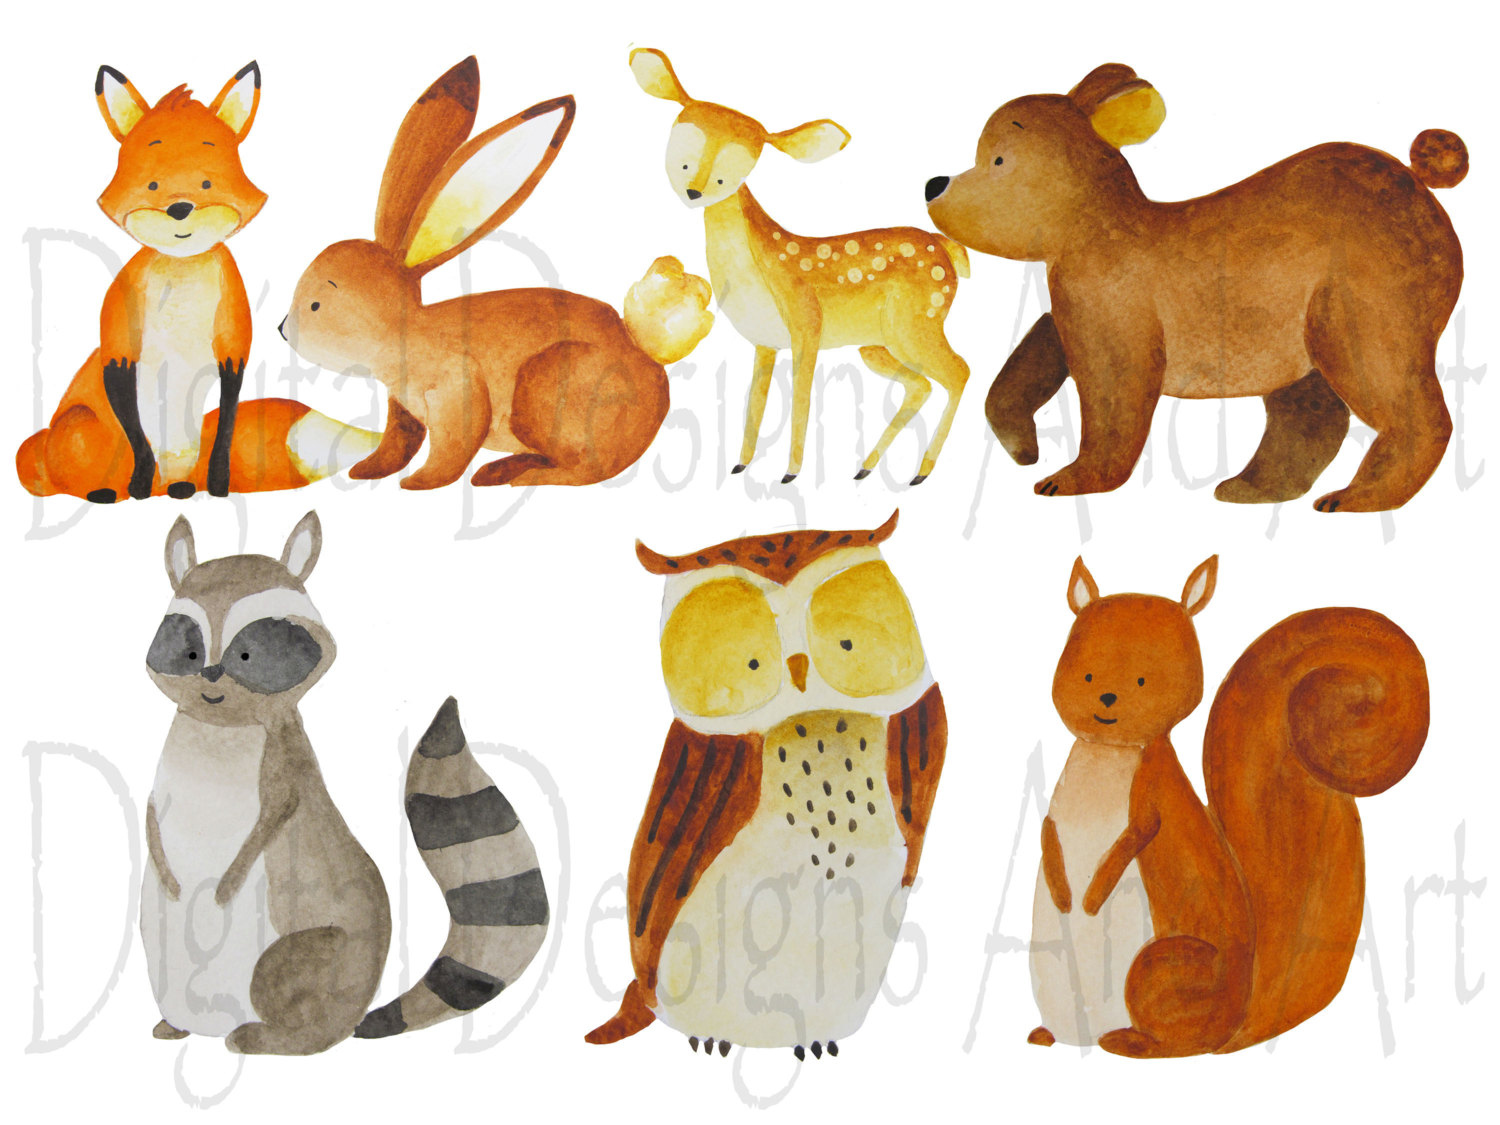 Watercolor forest animals clipart foxes clipart Forest.